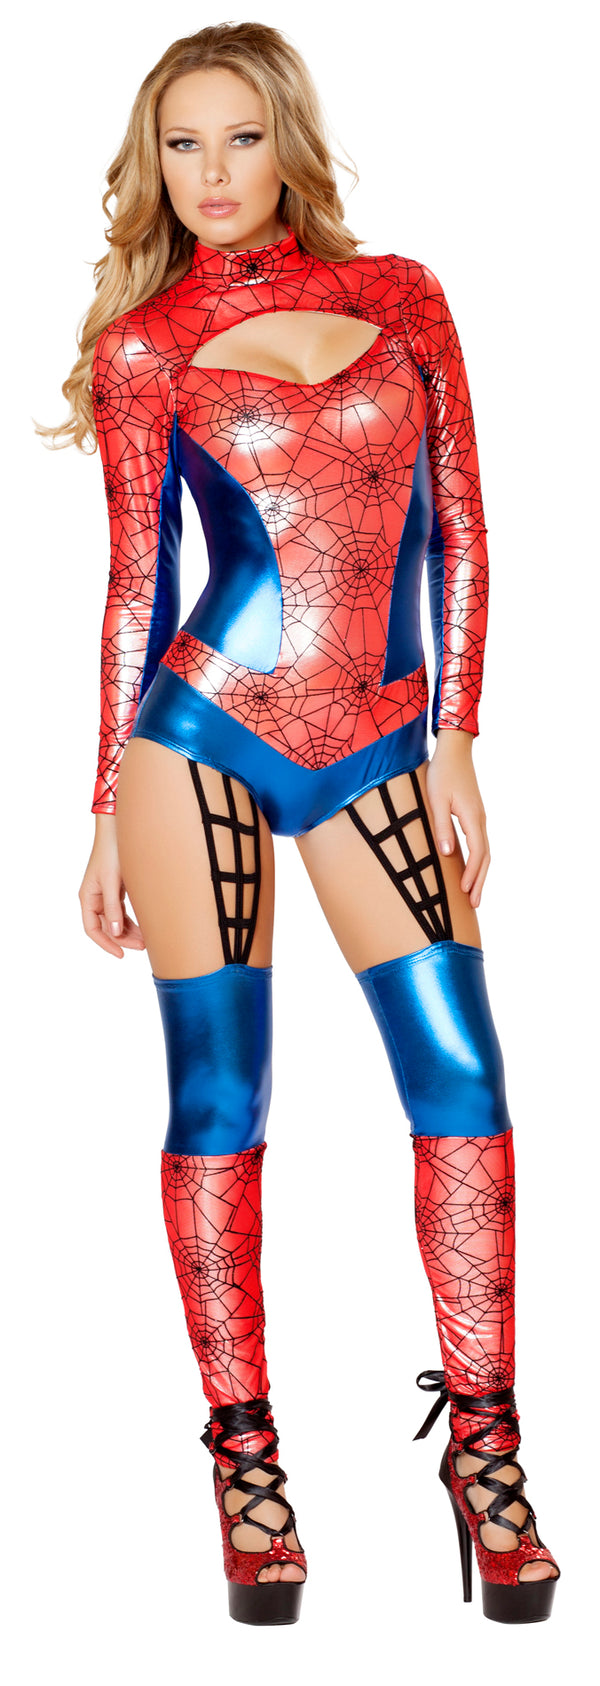 Sexy Red Spider Woman Costume Front RM4489